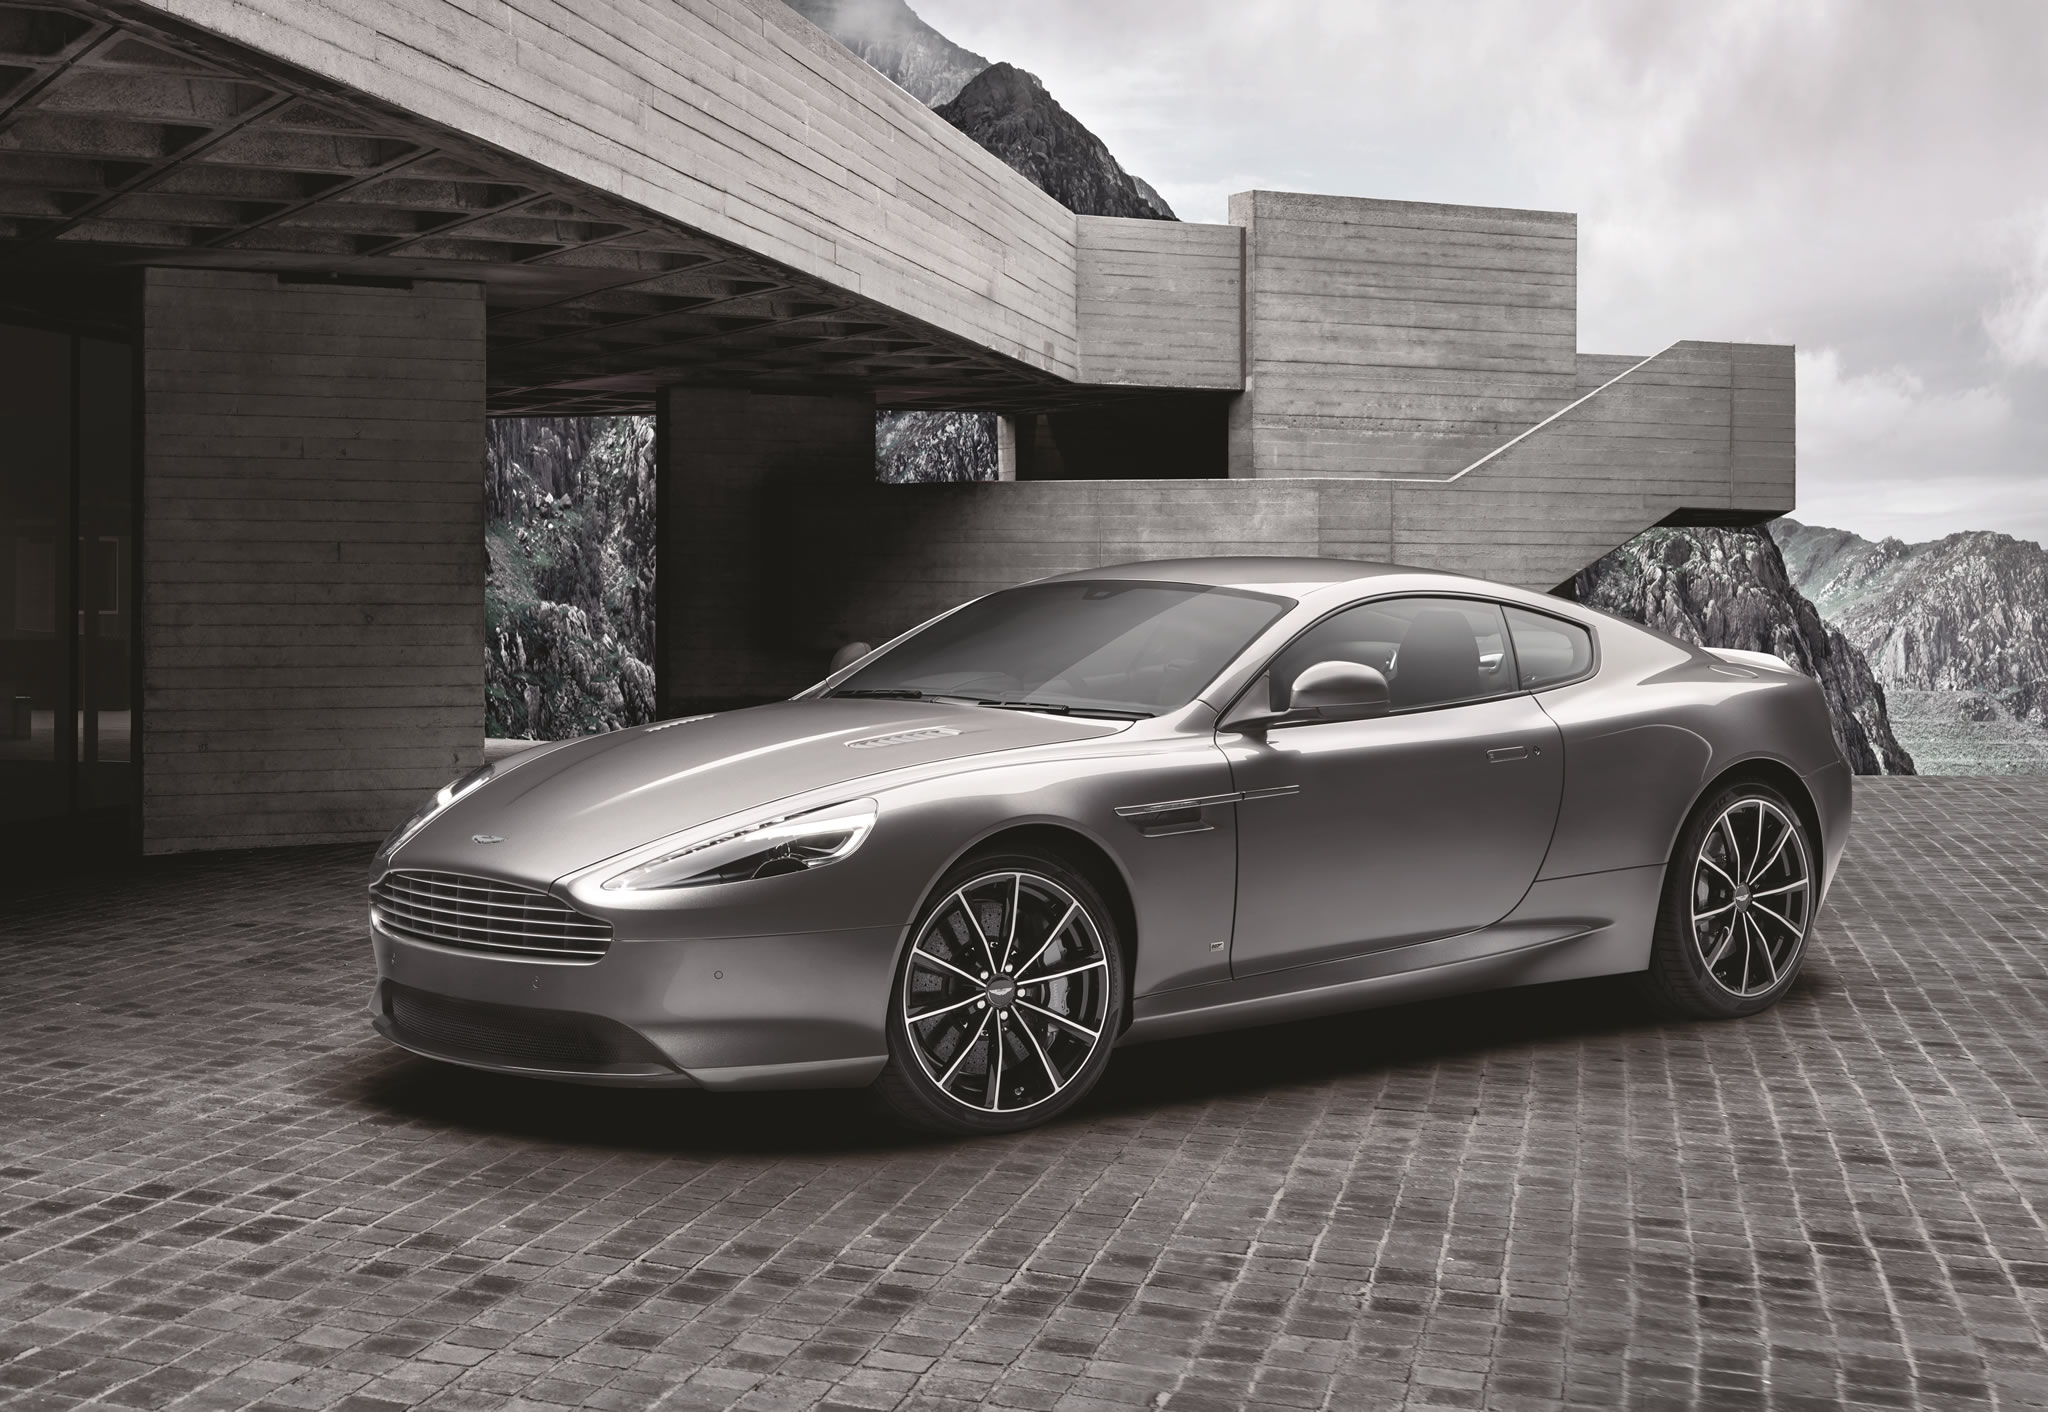 2016 aston martin db8 gt bond edition - front photo, 150 examples